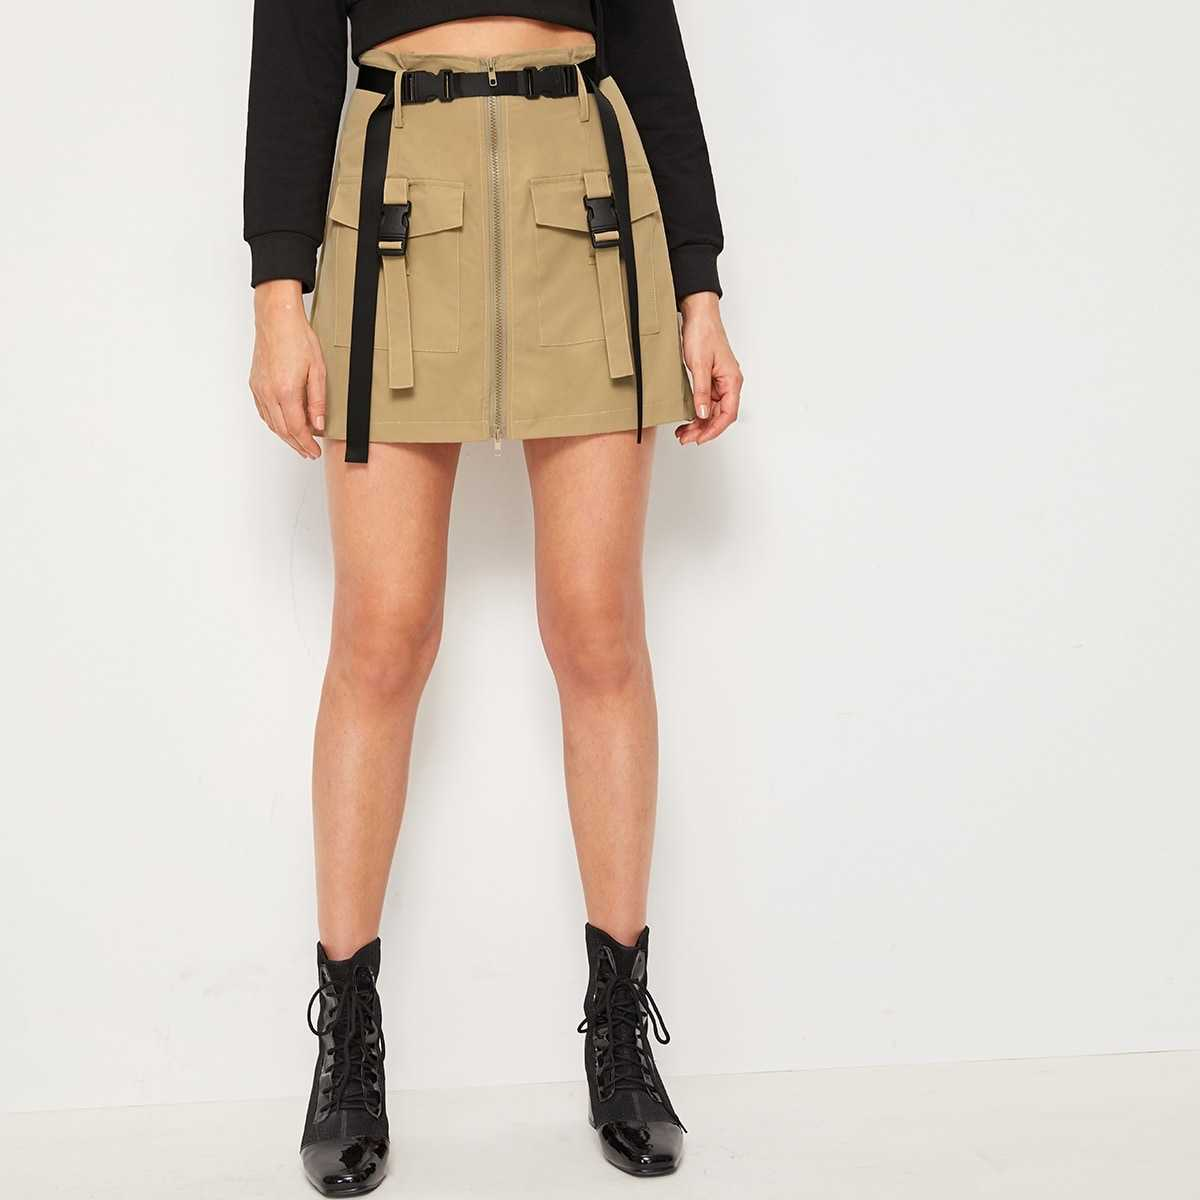 Flap Pocket Front Belted Cargo Skirt in Khaki by ROMWE on GOOFASH